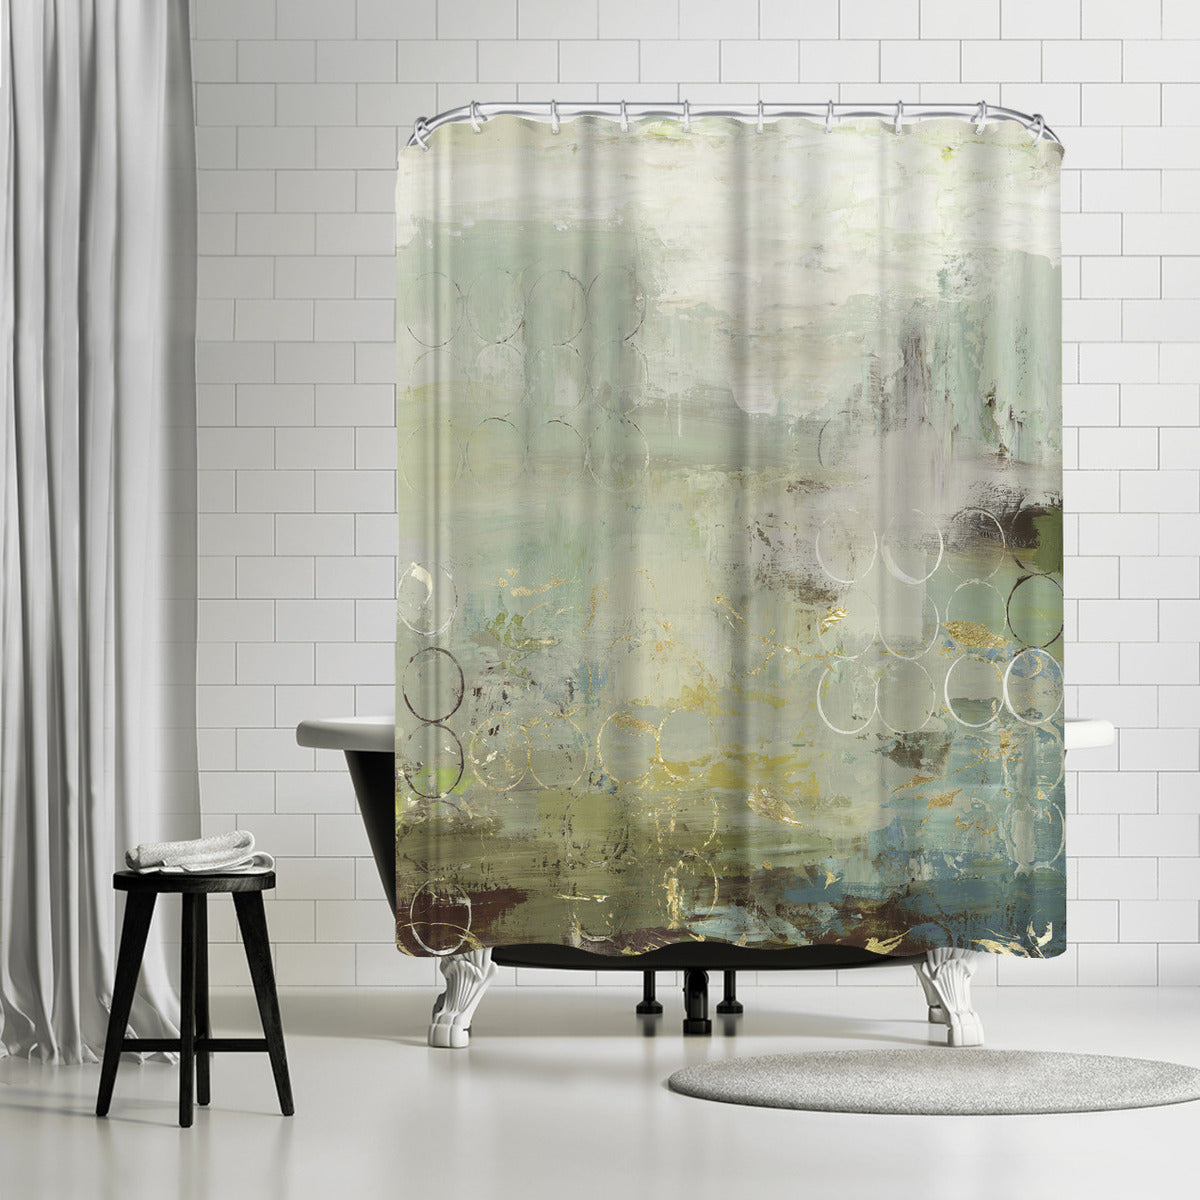 Liability I by PI Creative Art Shower Curtain - Shower Curtain - Americanflat